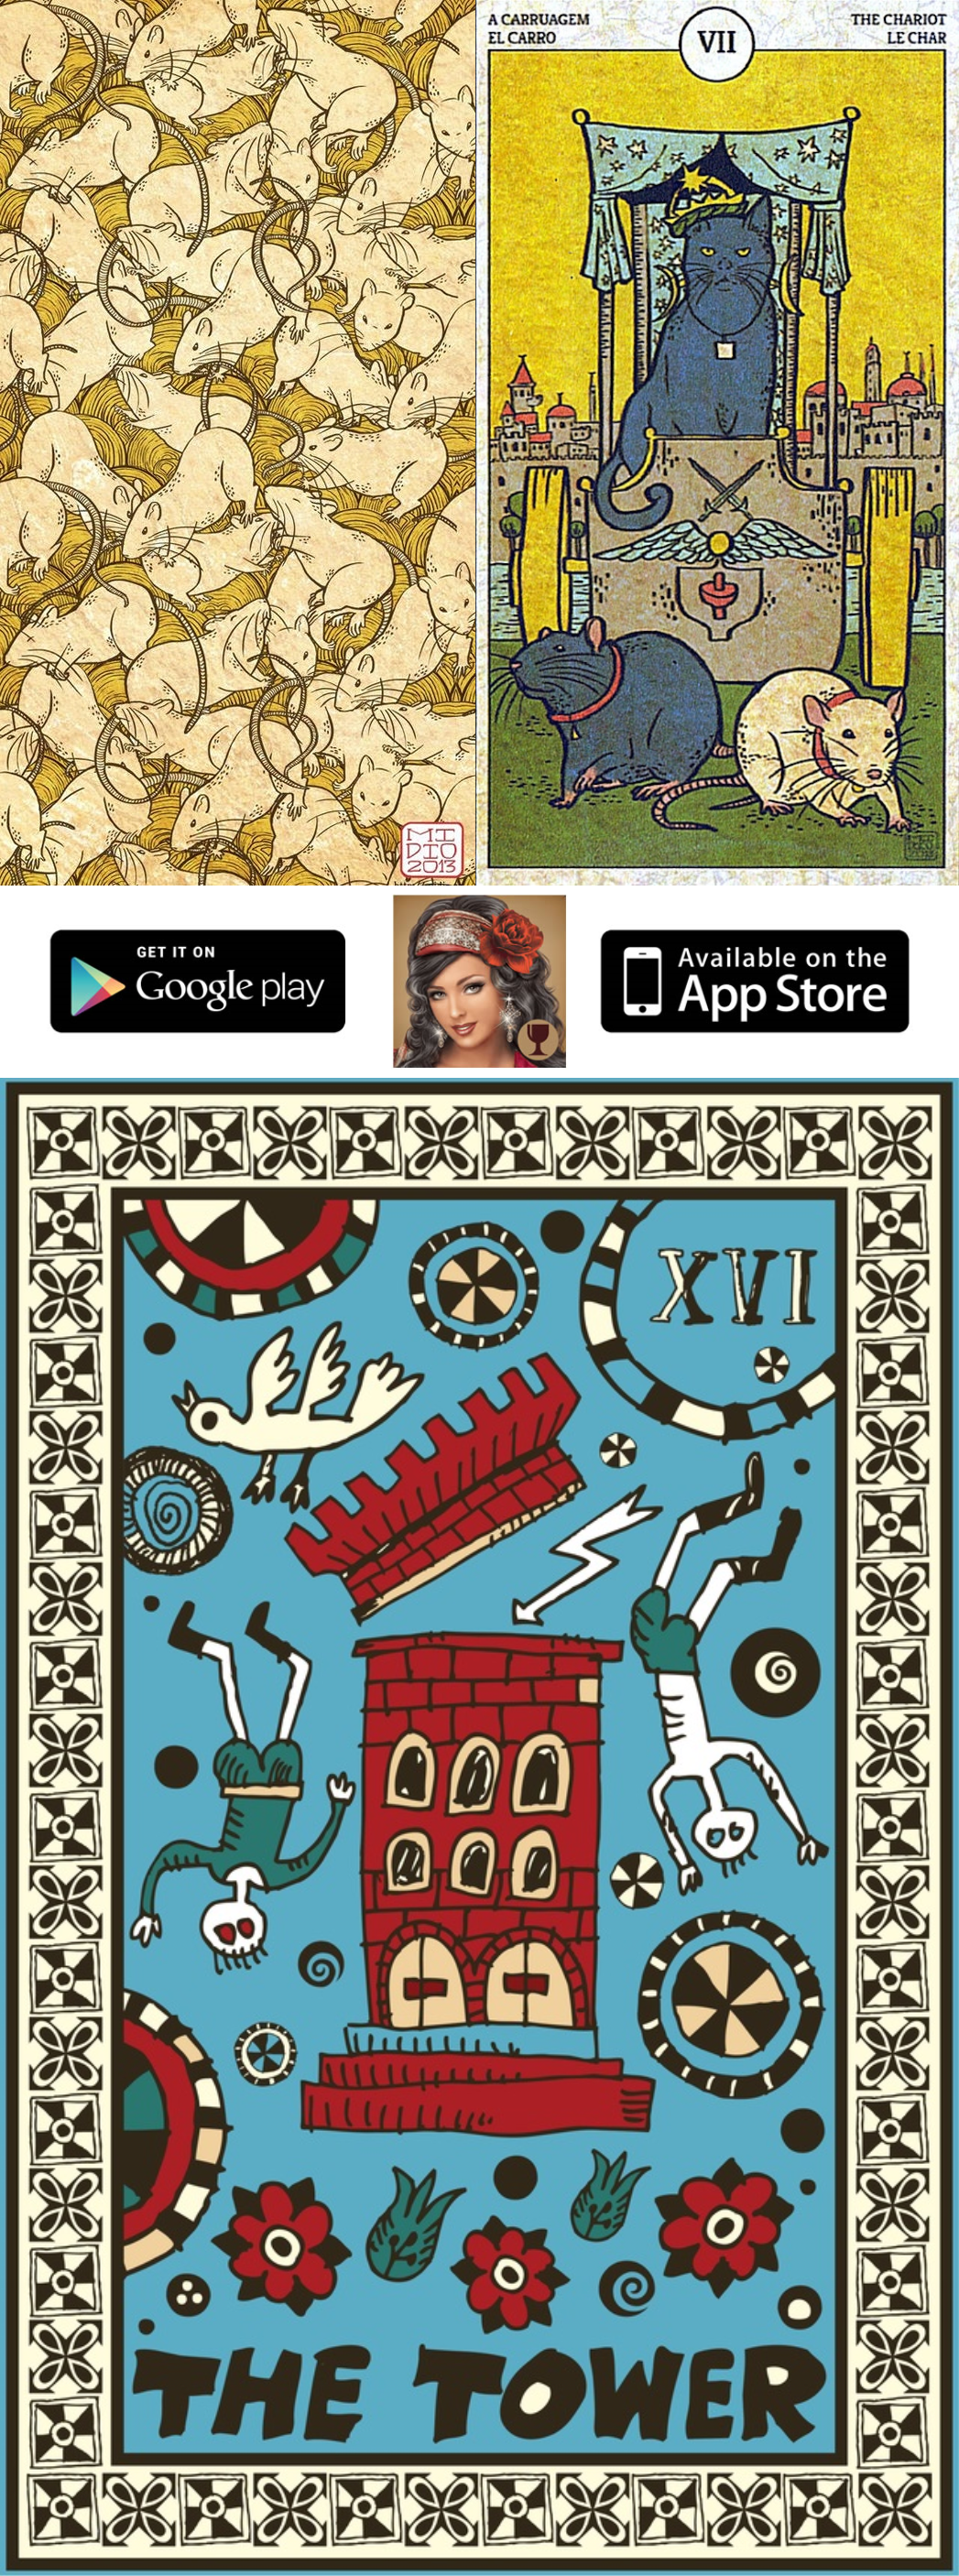 ✯ Get this free app on your iOS and Android device and